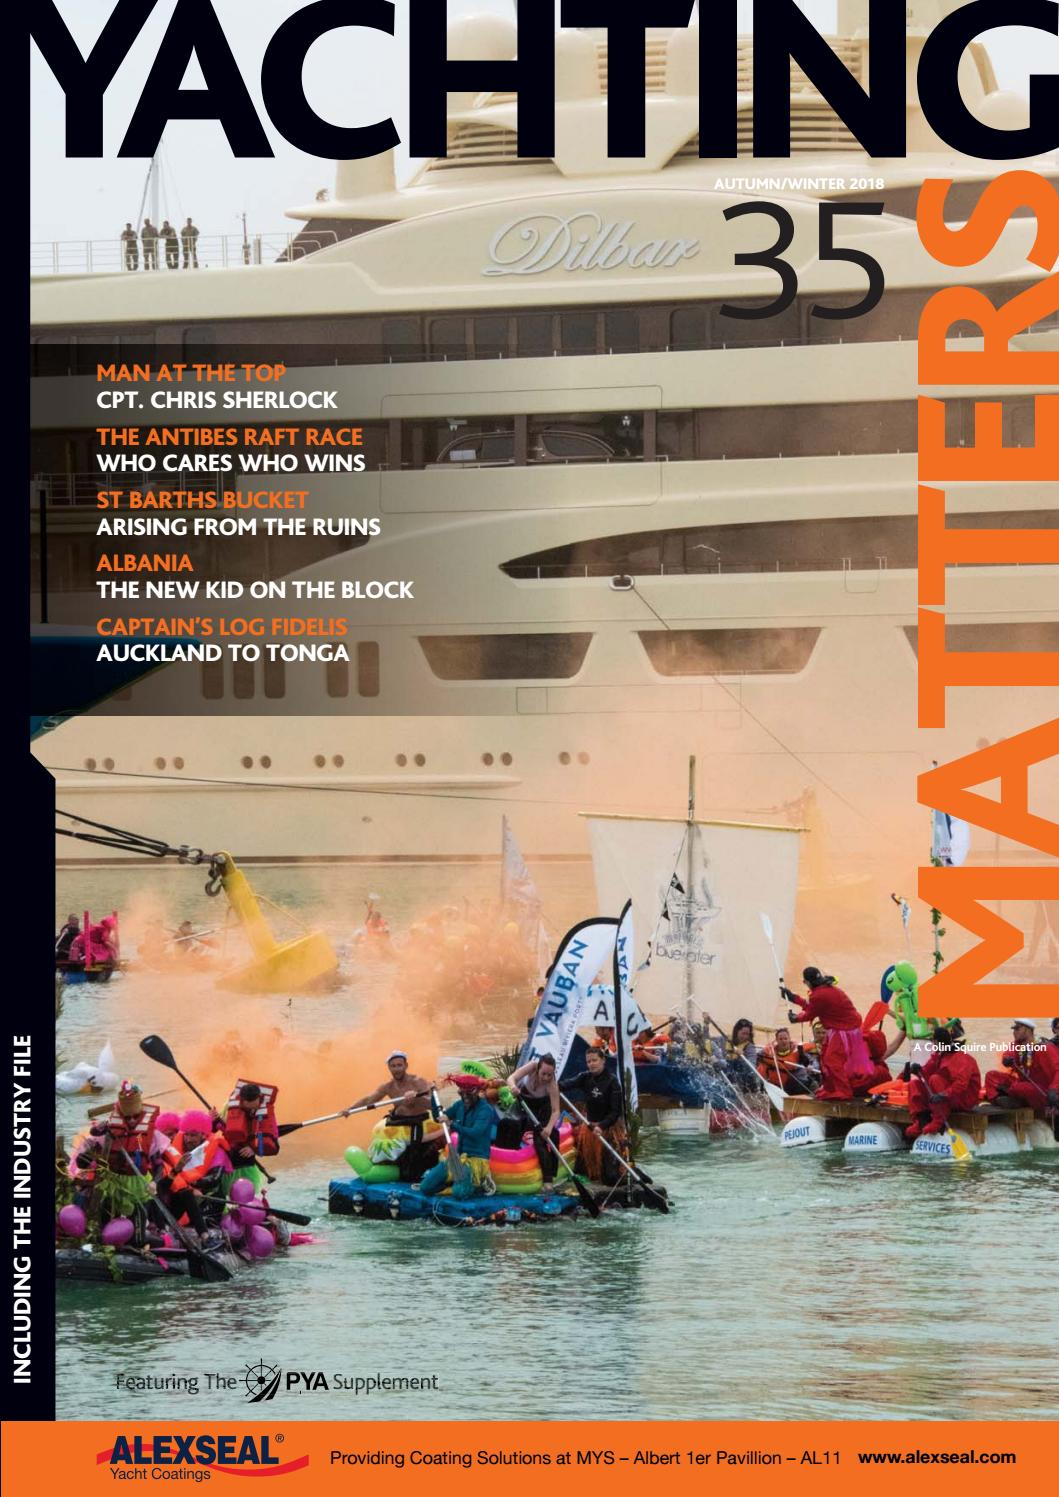 307845be4e0e Yachting Matters - 35 - Autumn/Winter 2018 by Yachting Matters - issuu